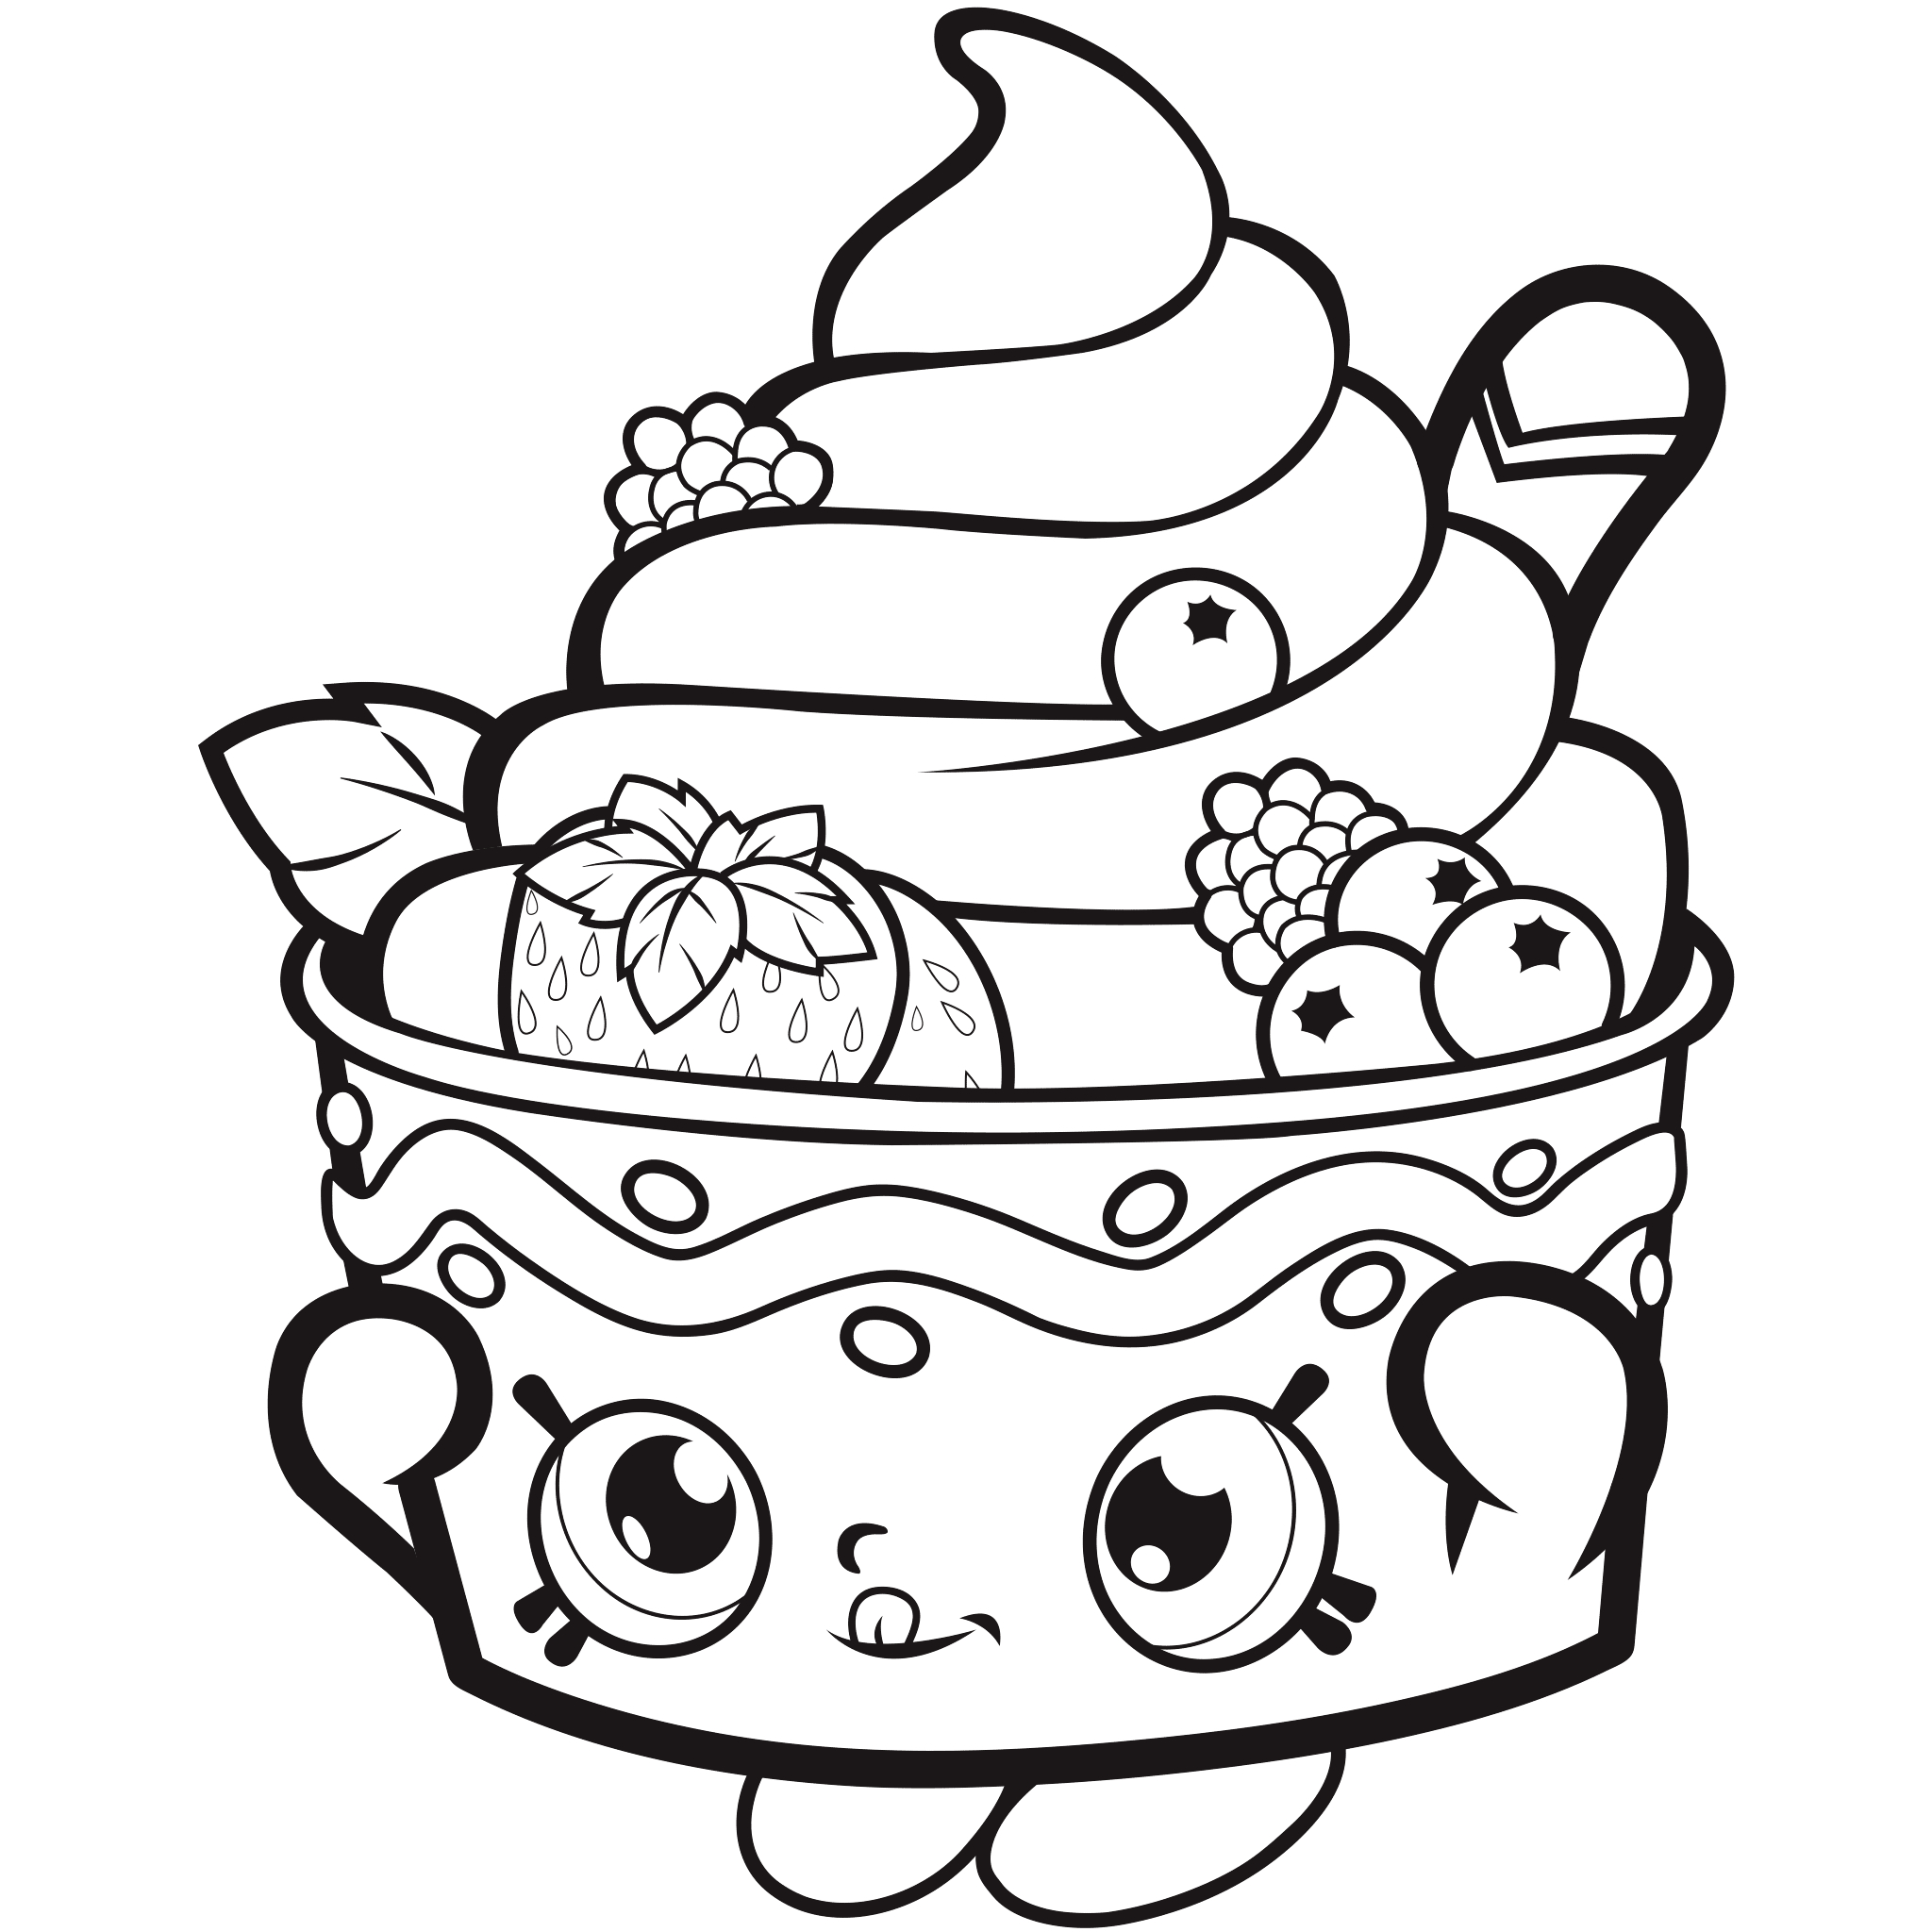 Shopkins Coloring Pages To Print Free Shopkins Coloring Pages